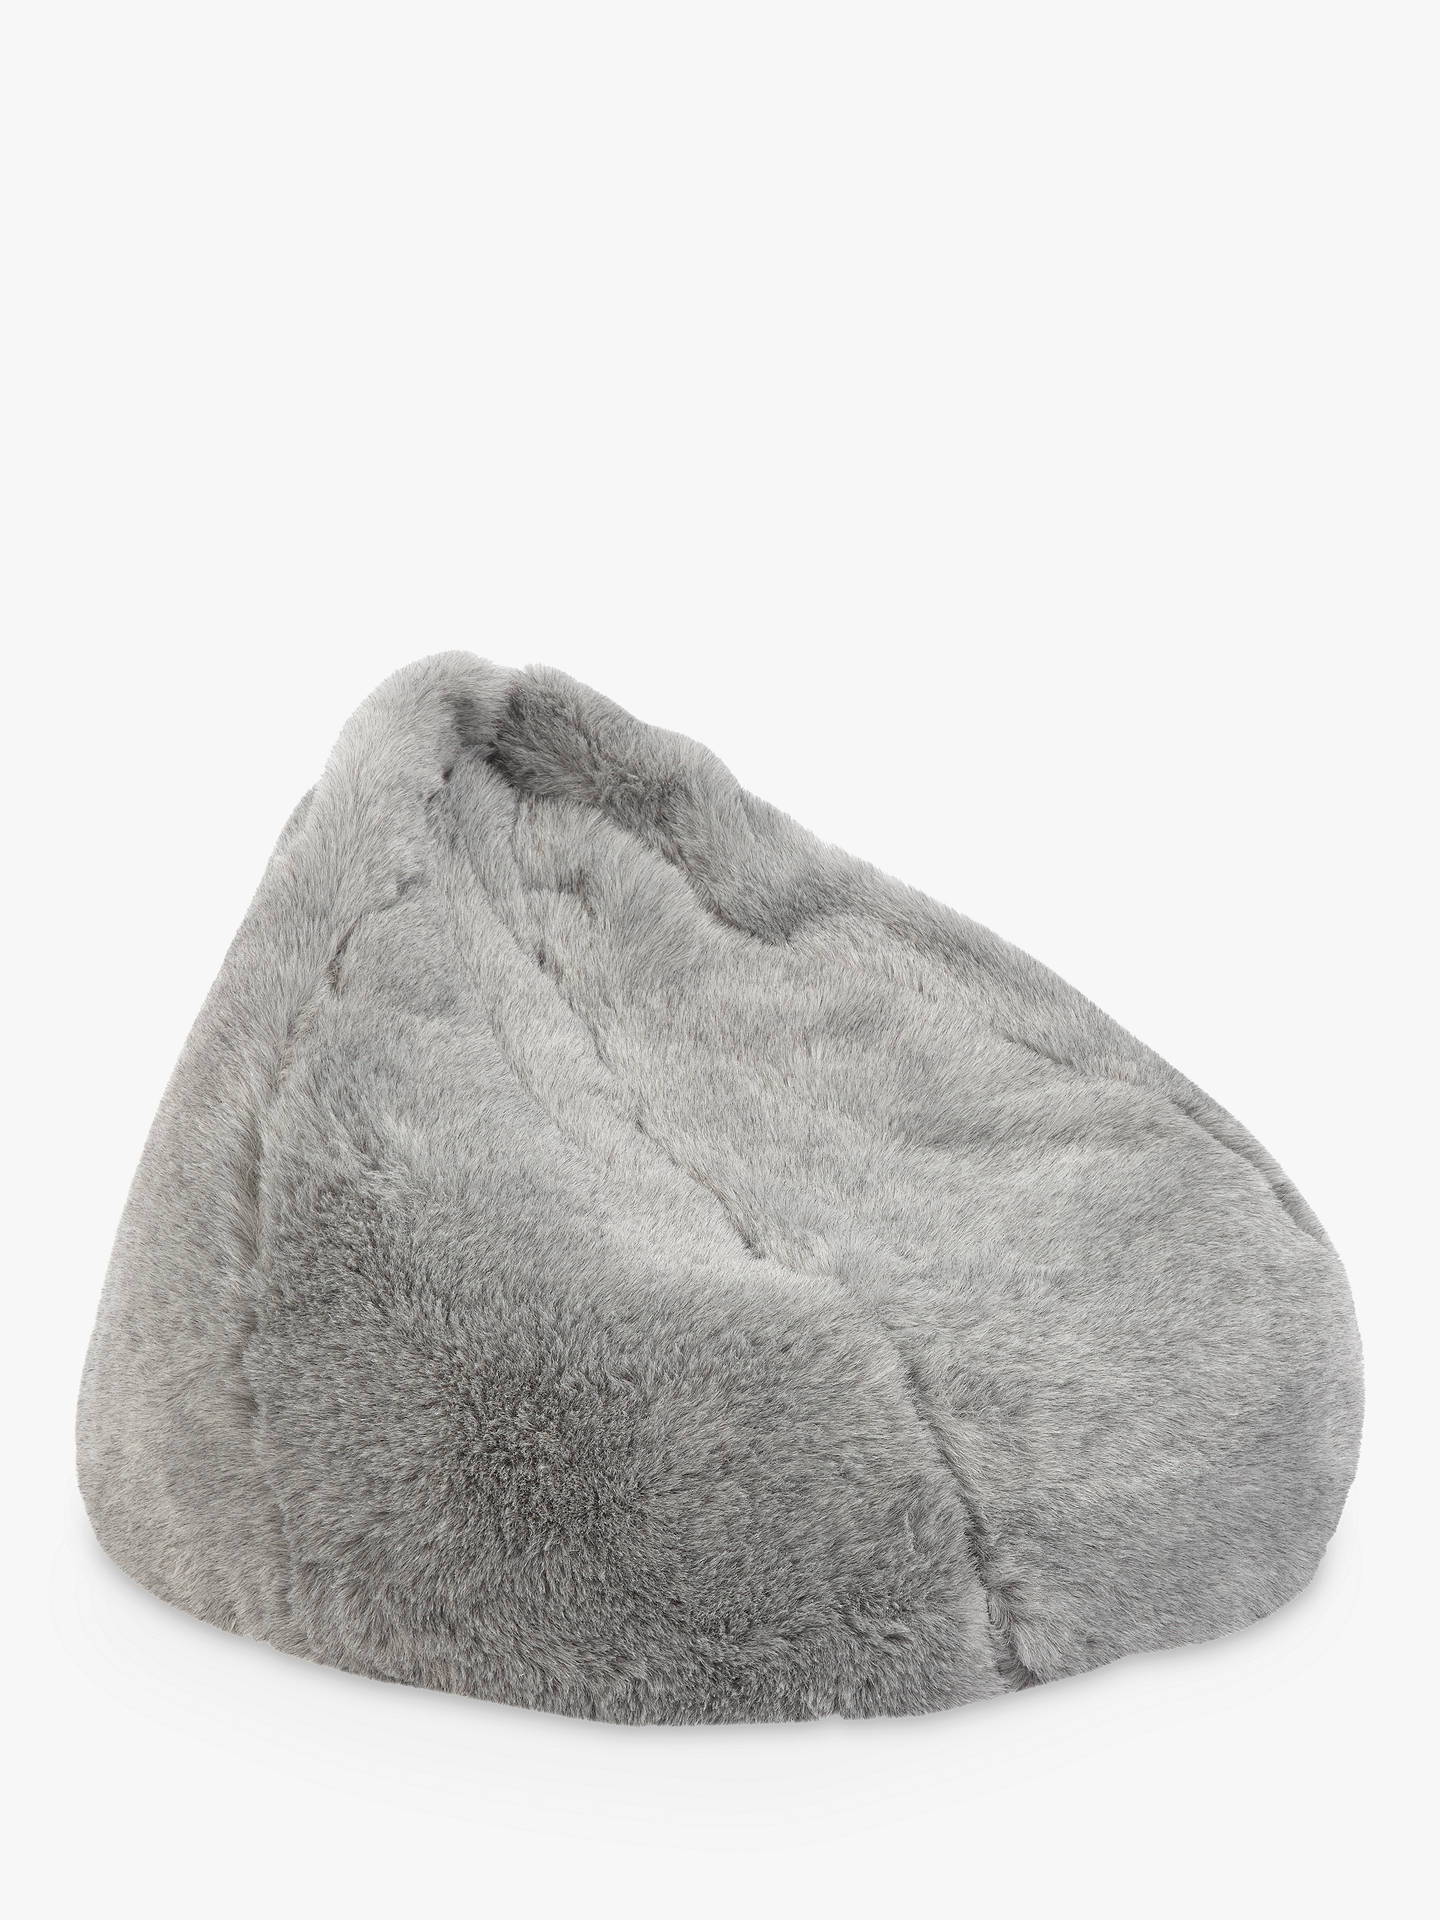 John Lewis Partners Faux Fur Bean Bag Grey Online At Johnlewis